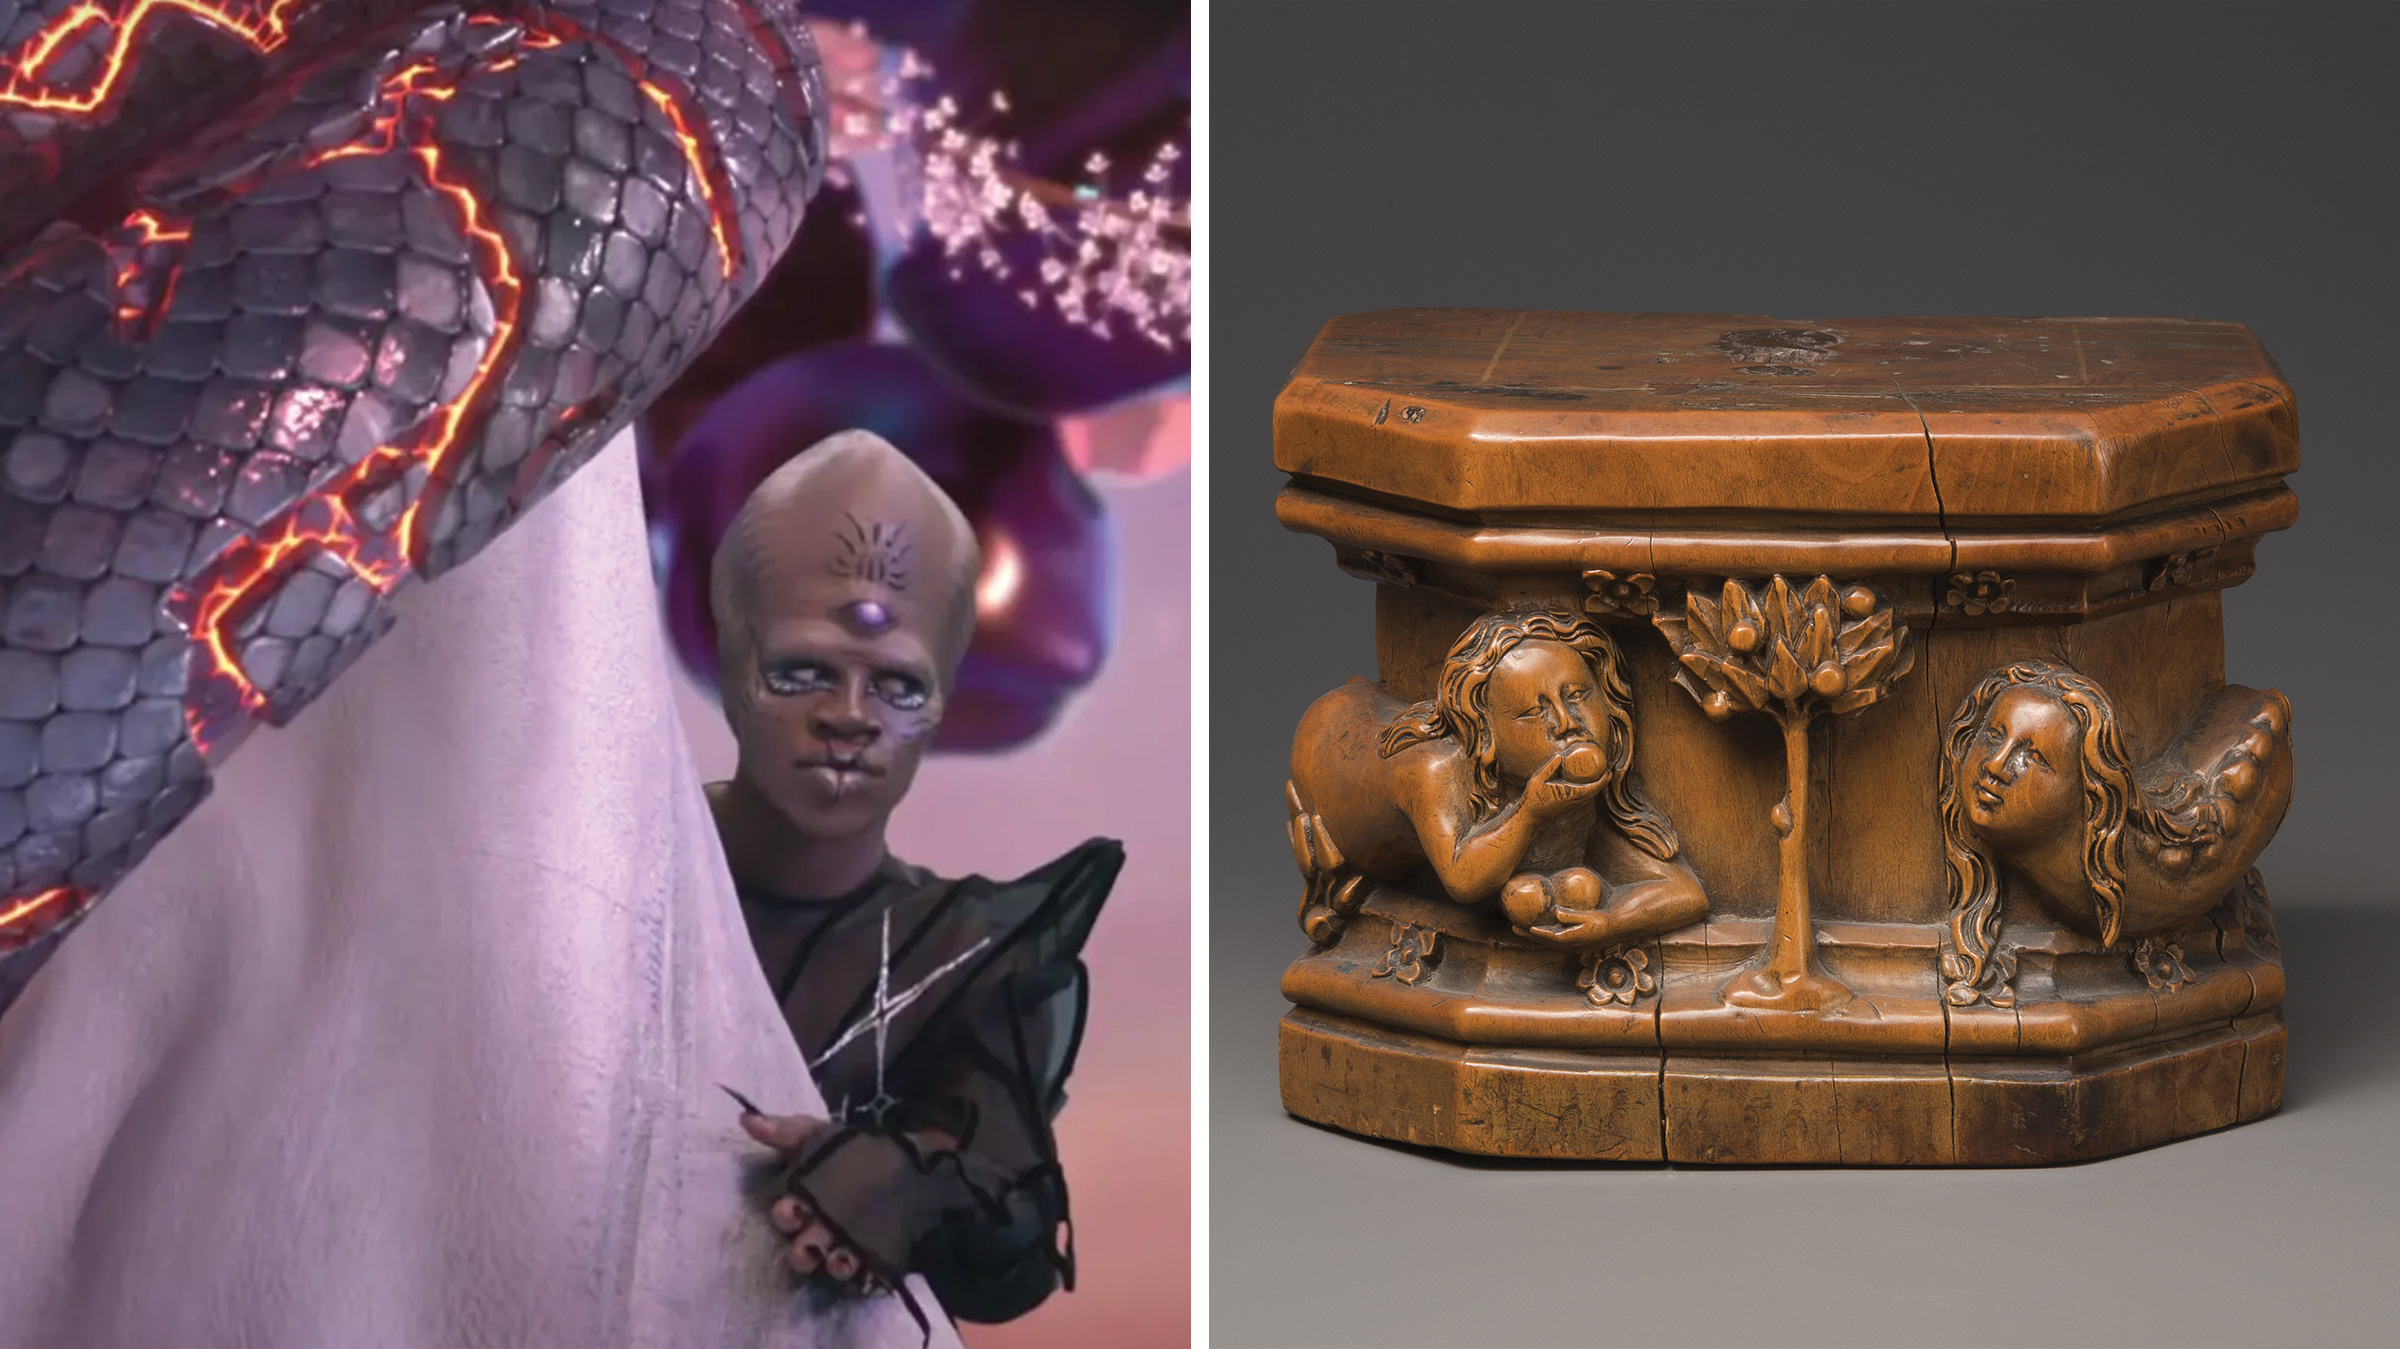 Left: The serpent in the Garden of Eden in Lil Nas X's  Montero. ; Right: Base for a Statuette in which the figures of Eve and the serpent appear on either side of the Tree of Knowledge in the Garden of Eden.